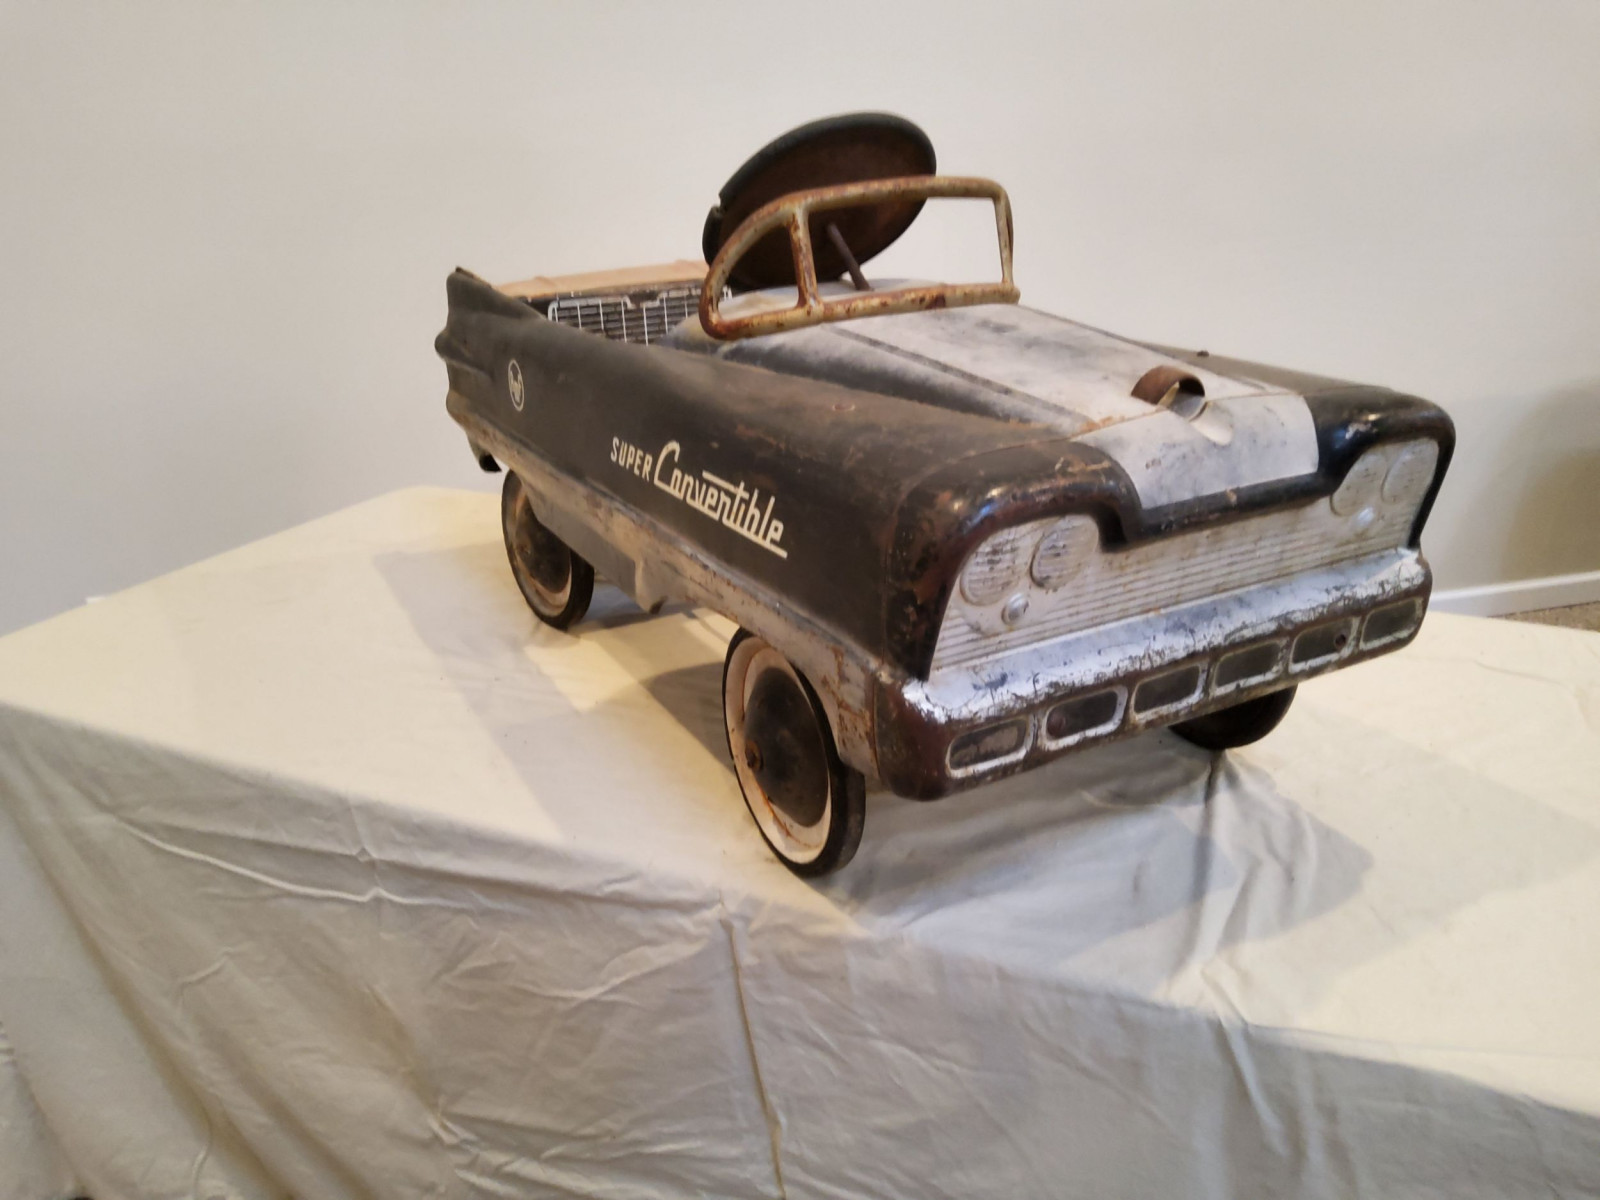 1954 AMF Super Convertible Pedal Car - Image 4